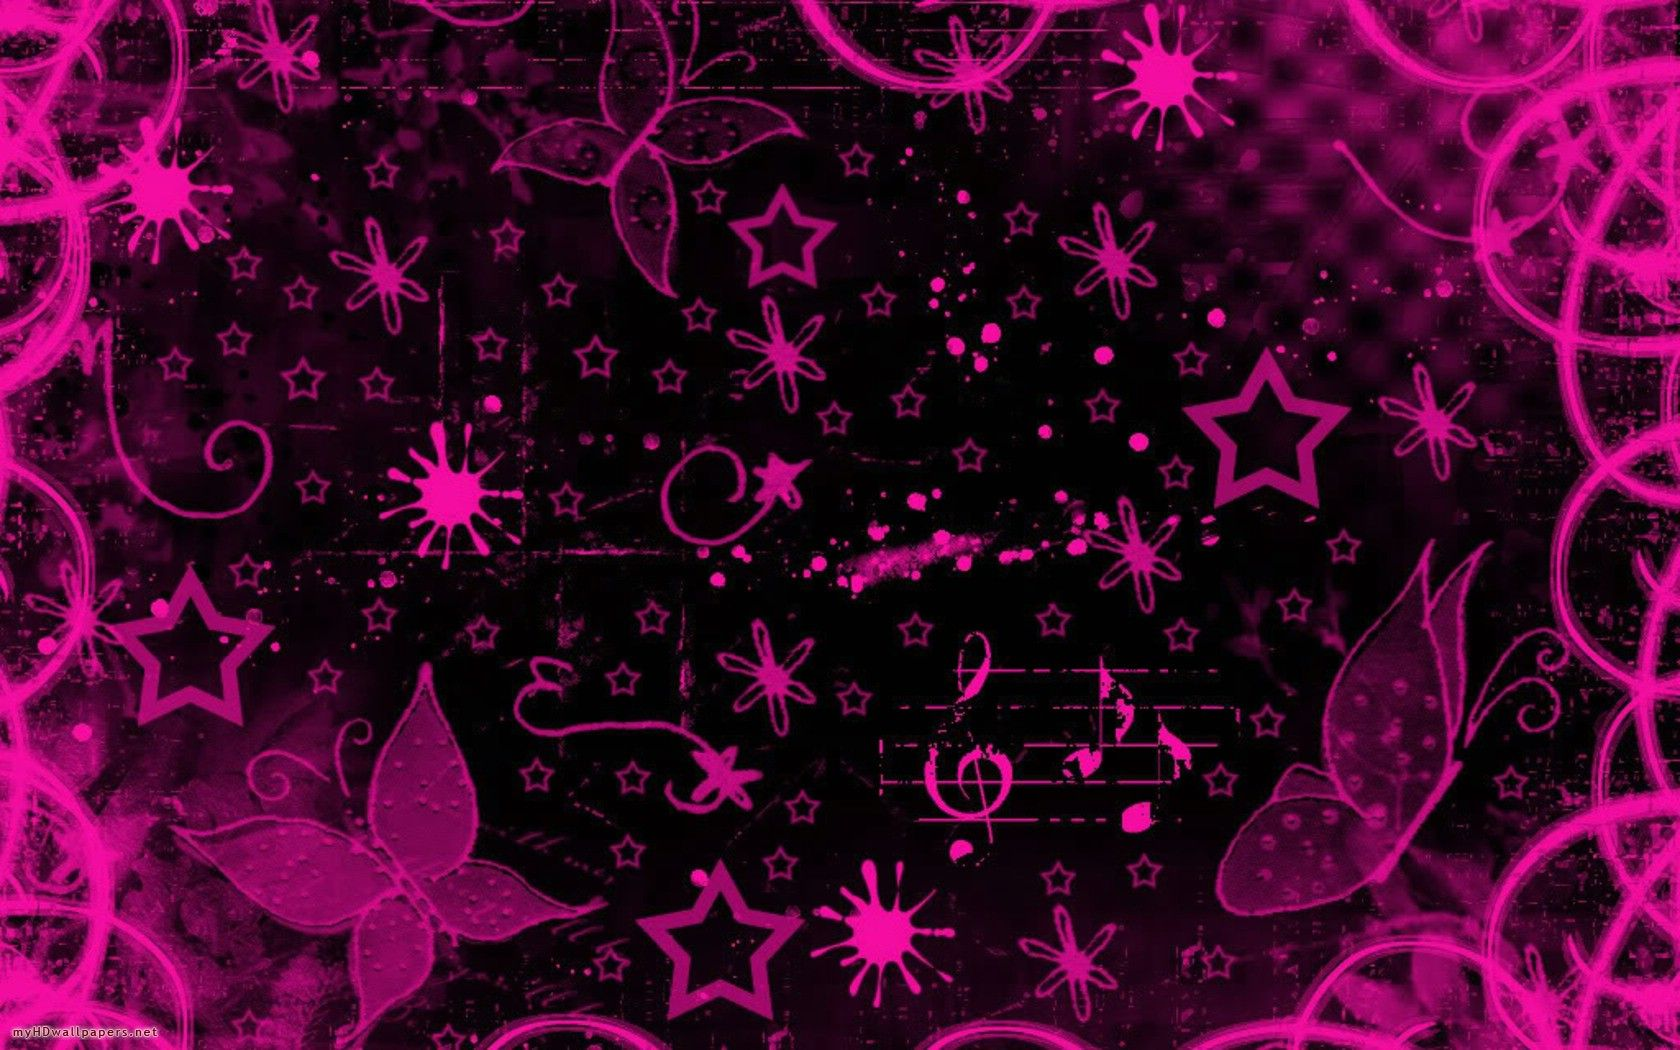 Pink black design Free Desktop Wallpaper, HD Wallpapers